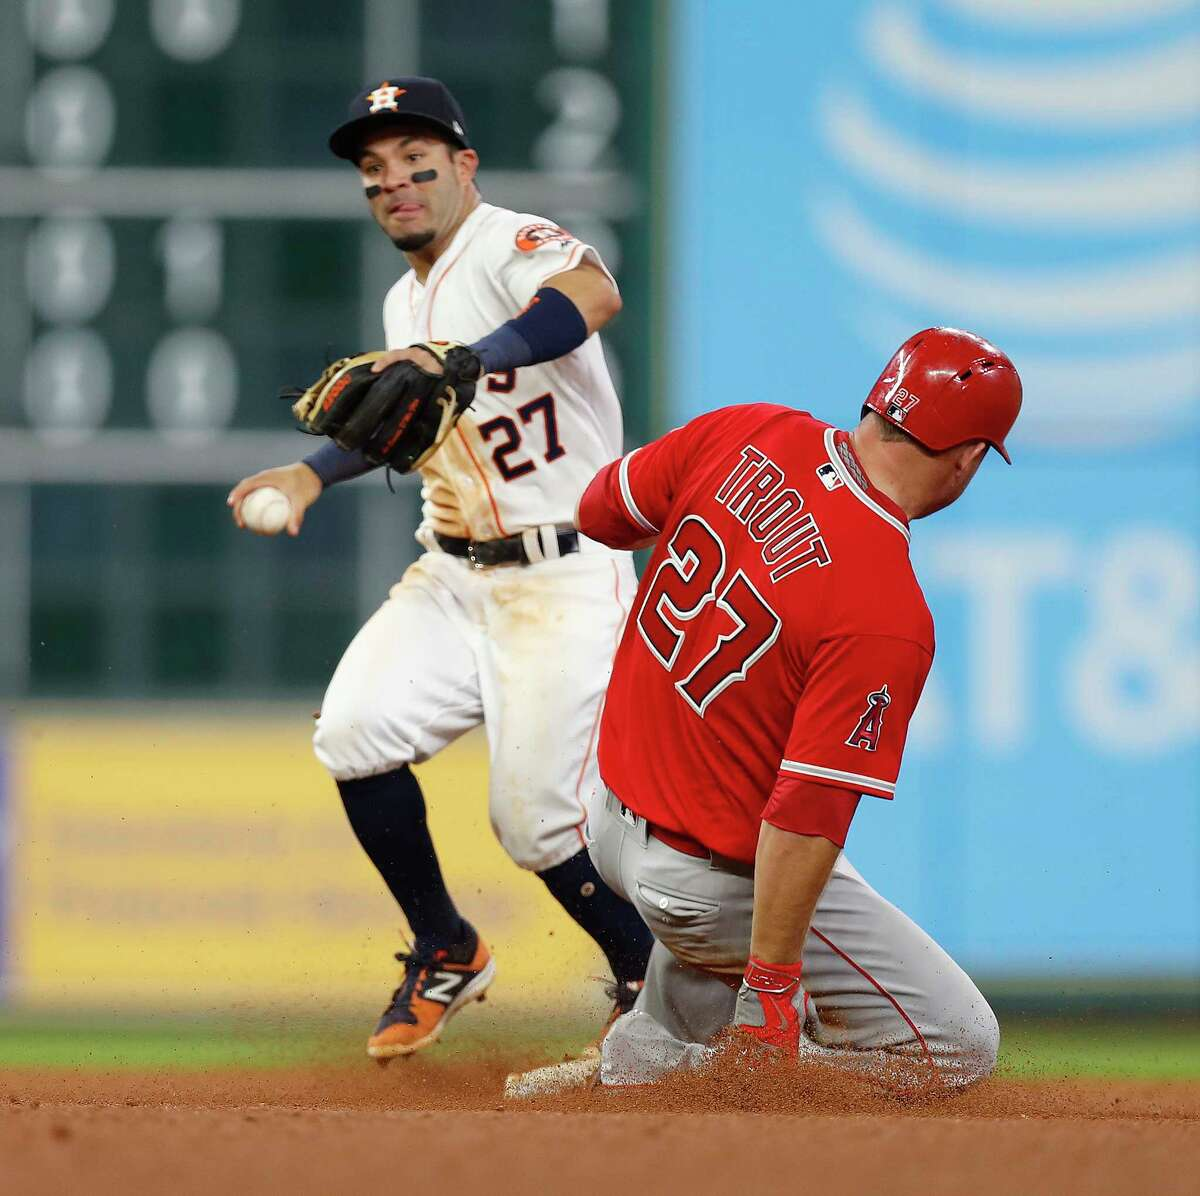 Los Angeles Angels Mike Trout (27) is tagged out at second base by Houston Astros second baseman Jose Altuve (27) as Albert Pujols ground into a double play during the seventh inning of an MLB baseball game at Minute Maid Park, Tuesday, April 18, 2017, in Houston.